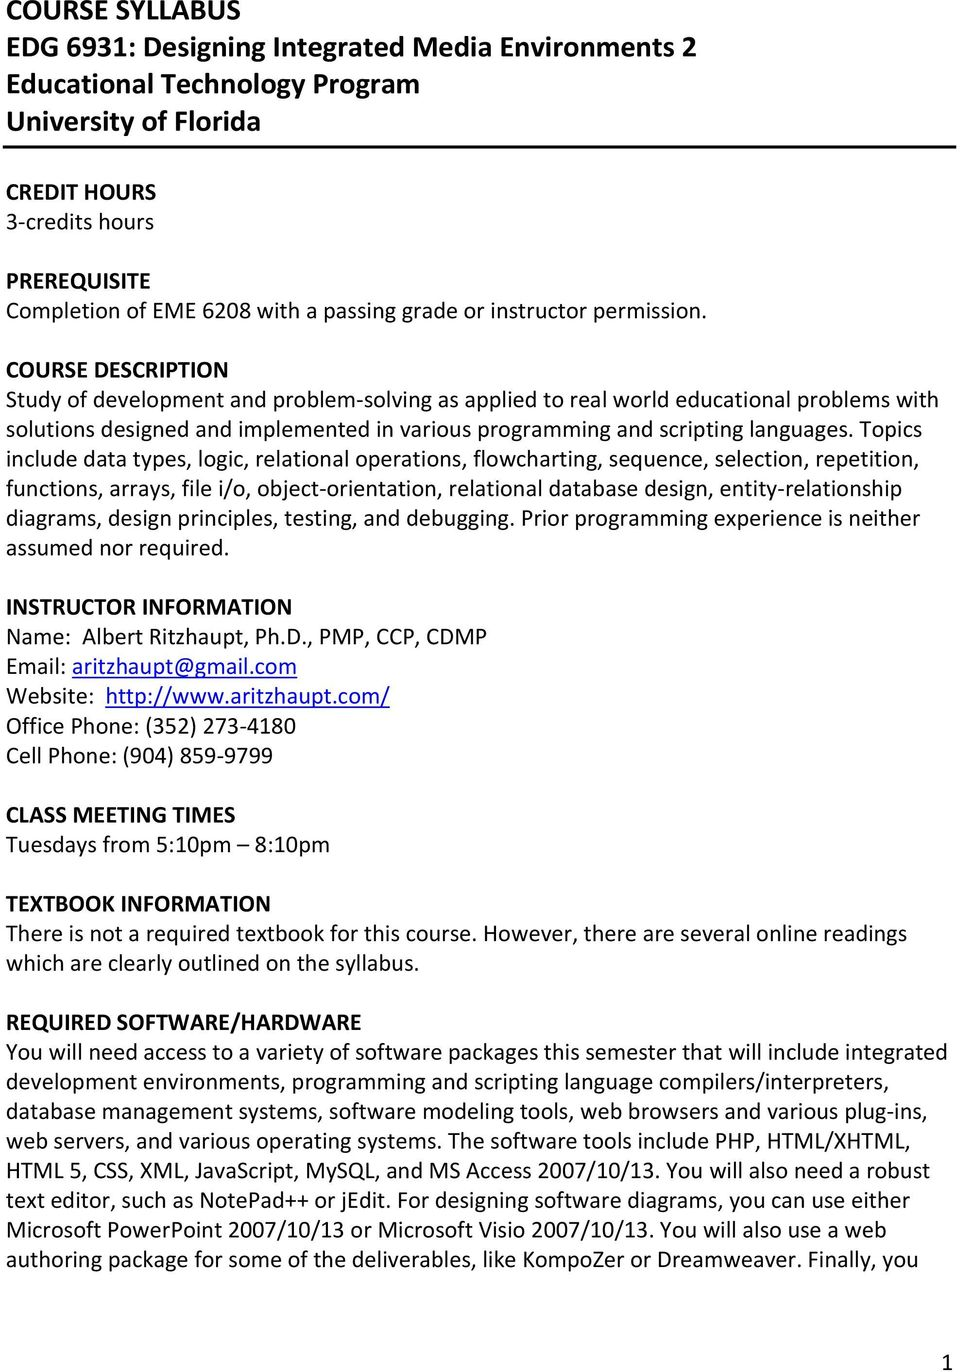 COURSE DESCRIPTION Study of development and problem solving as applied to real world educational problems with solutions designed and implemented in various programming and scripting languages.